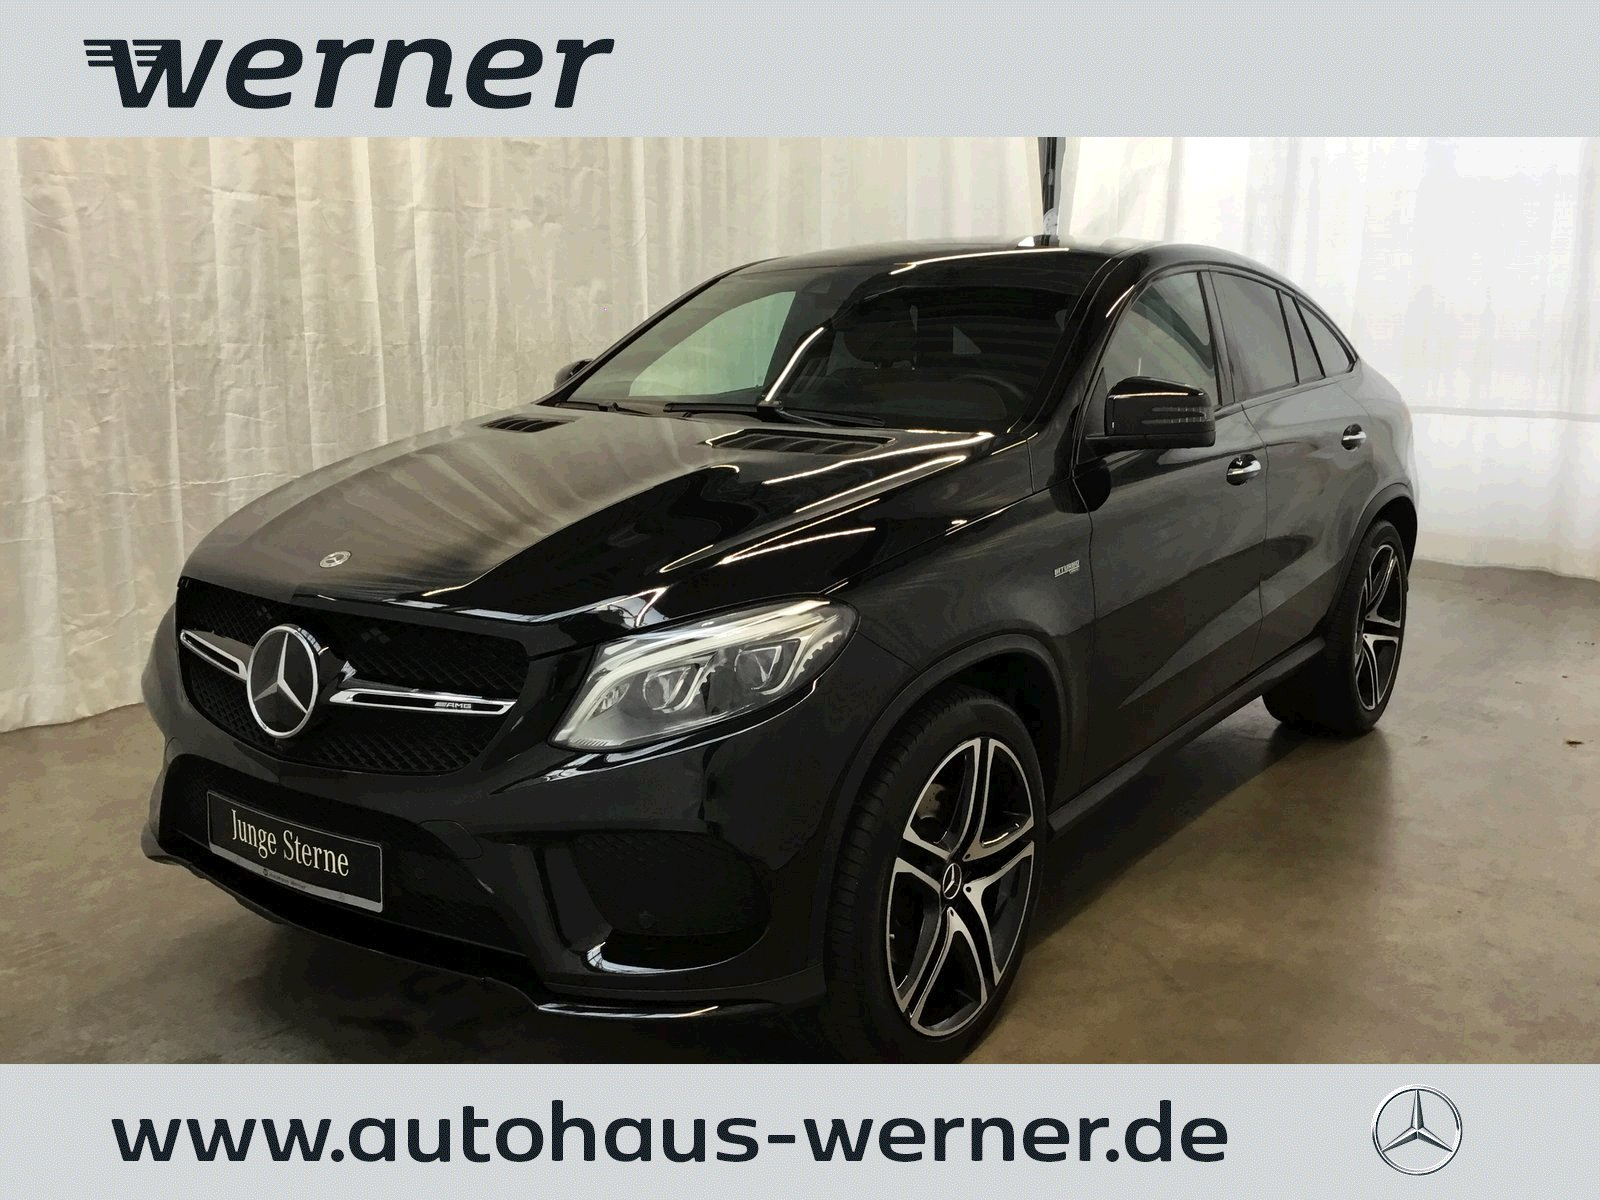 Mercedes-Benz GLE 43 AMG Coupe+ACTIVE CURVE+AIRMATIC+PANO+360°, Jahr 2017, Benzin